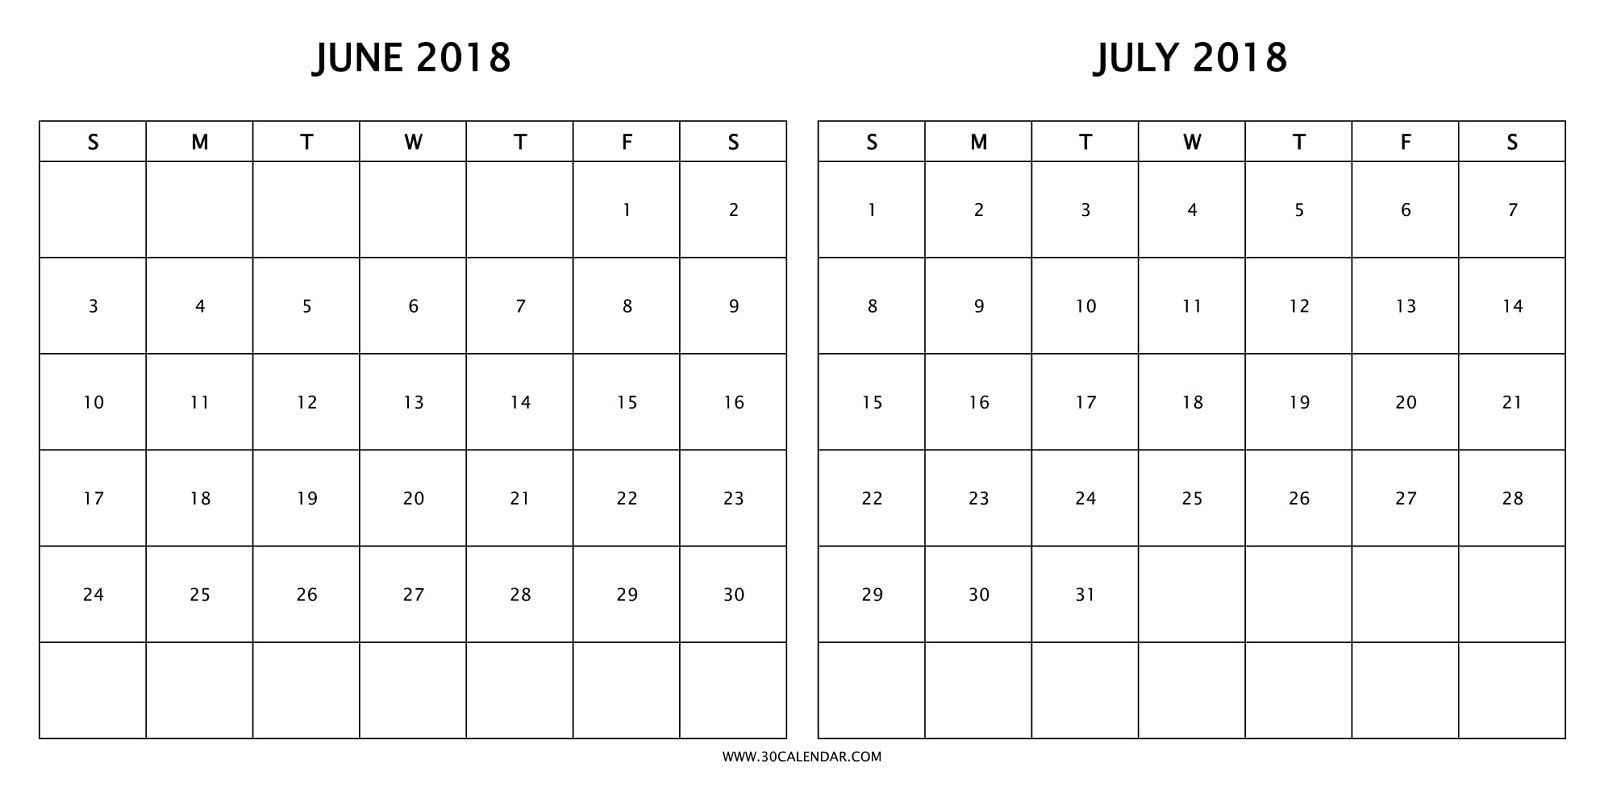 Print Free Two Month Calendar 2018 June July With Holidays | 2018 throughout 2 Month Calendar Template June July